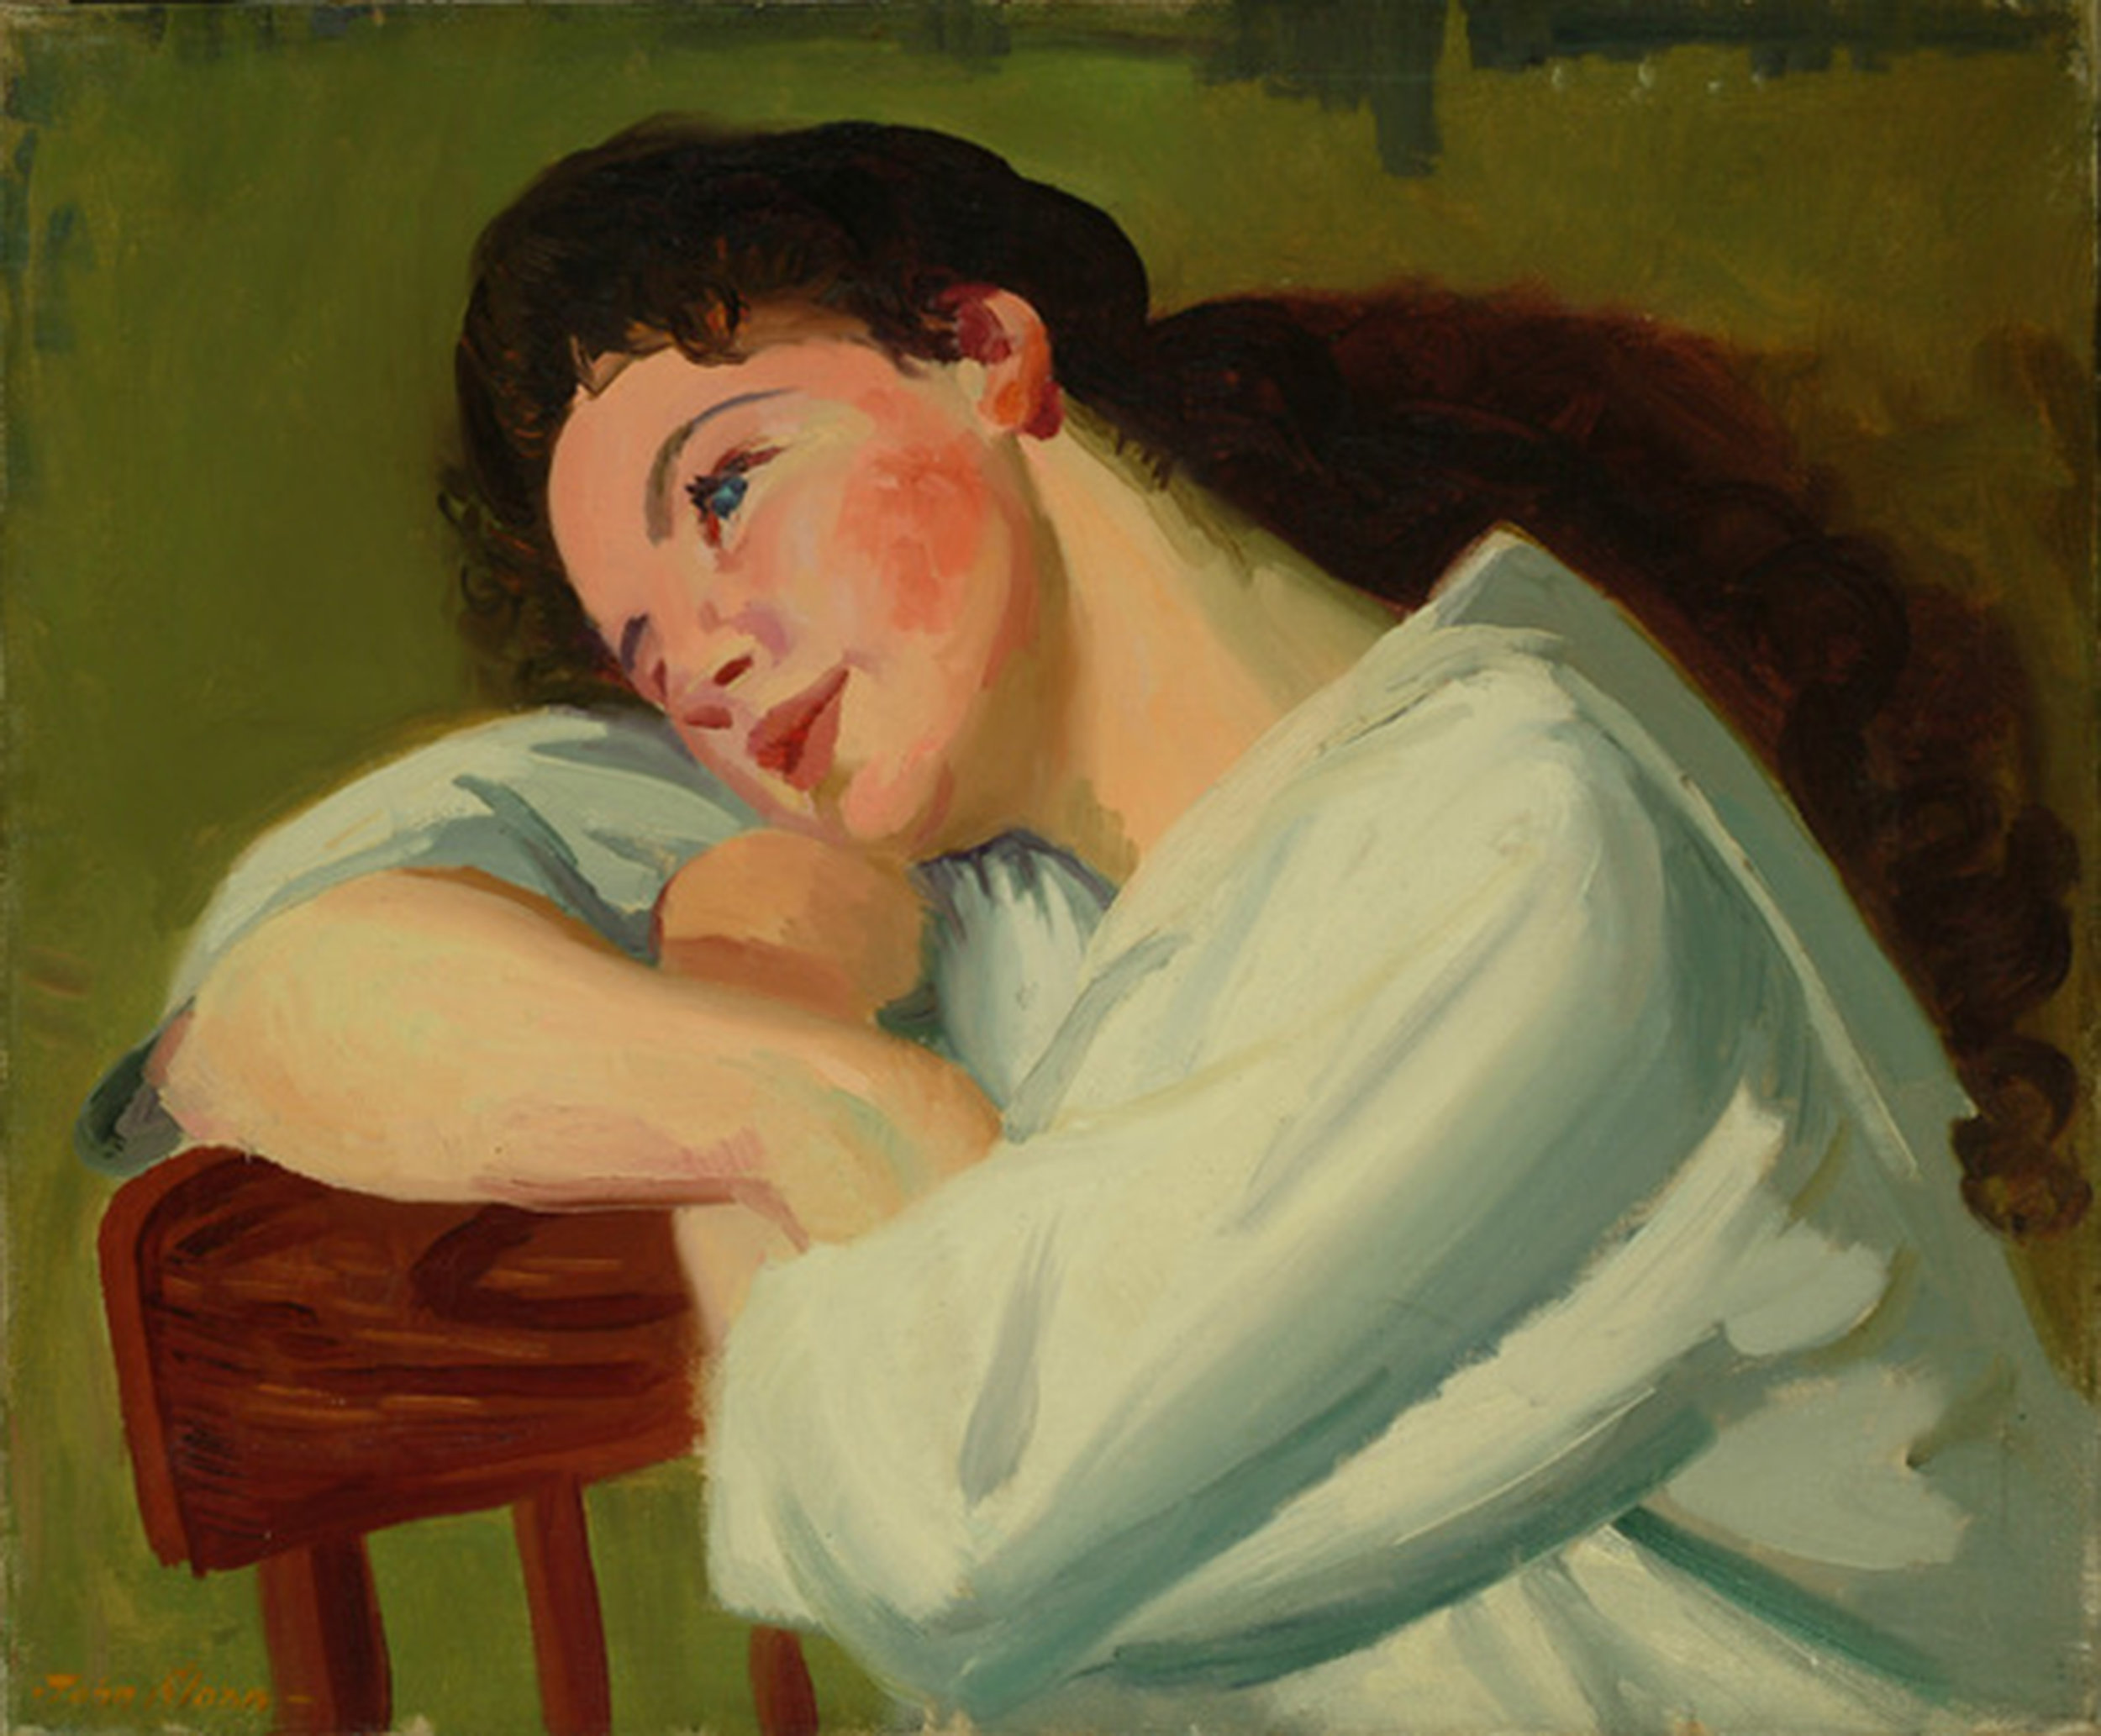 Portrait of a young woman resting her head on the back of a chair.